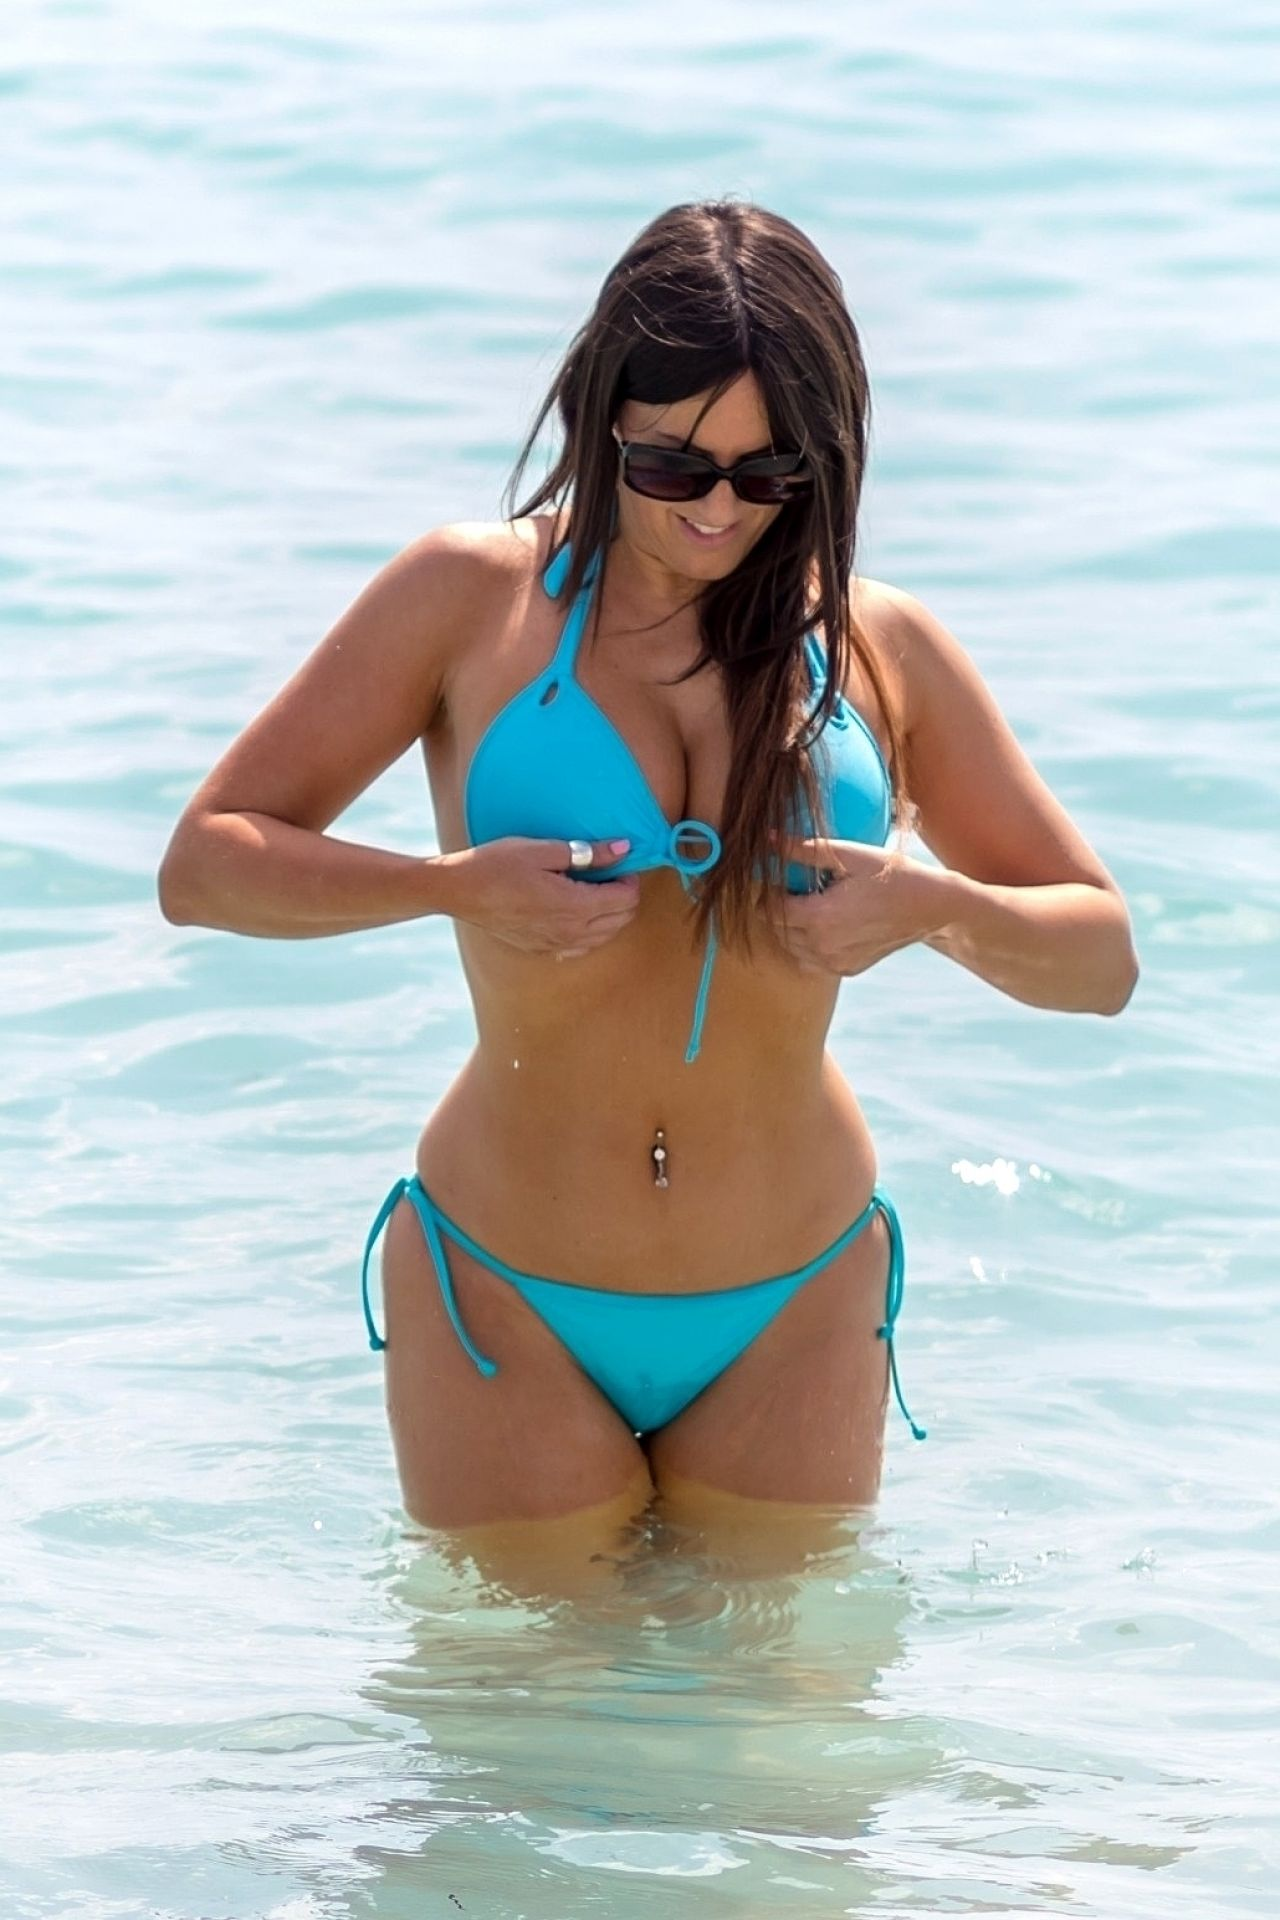 Claudia Romani In Bikini South Beach In Miami 03 22 2018